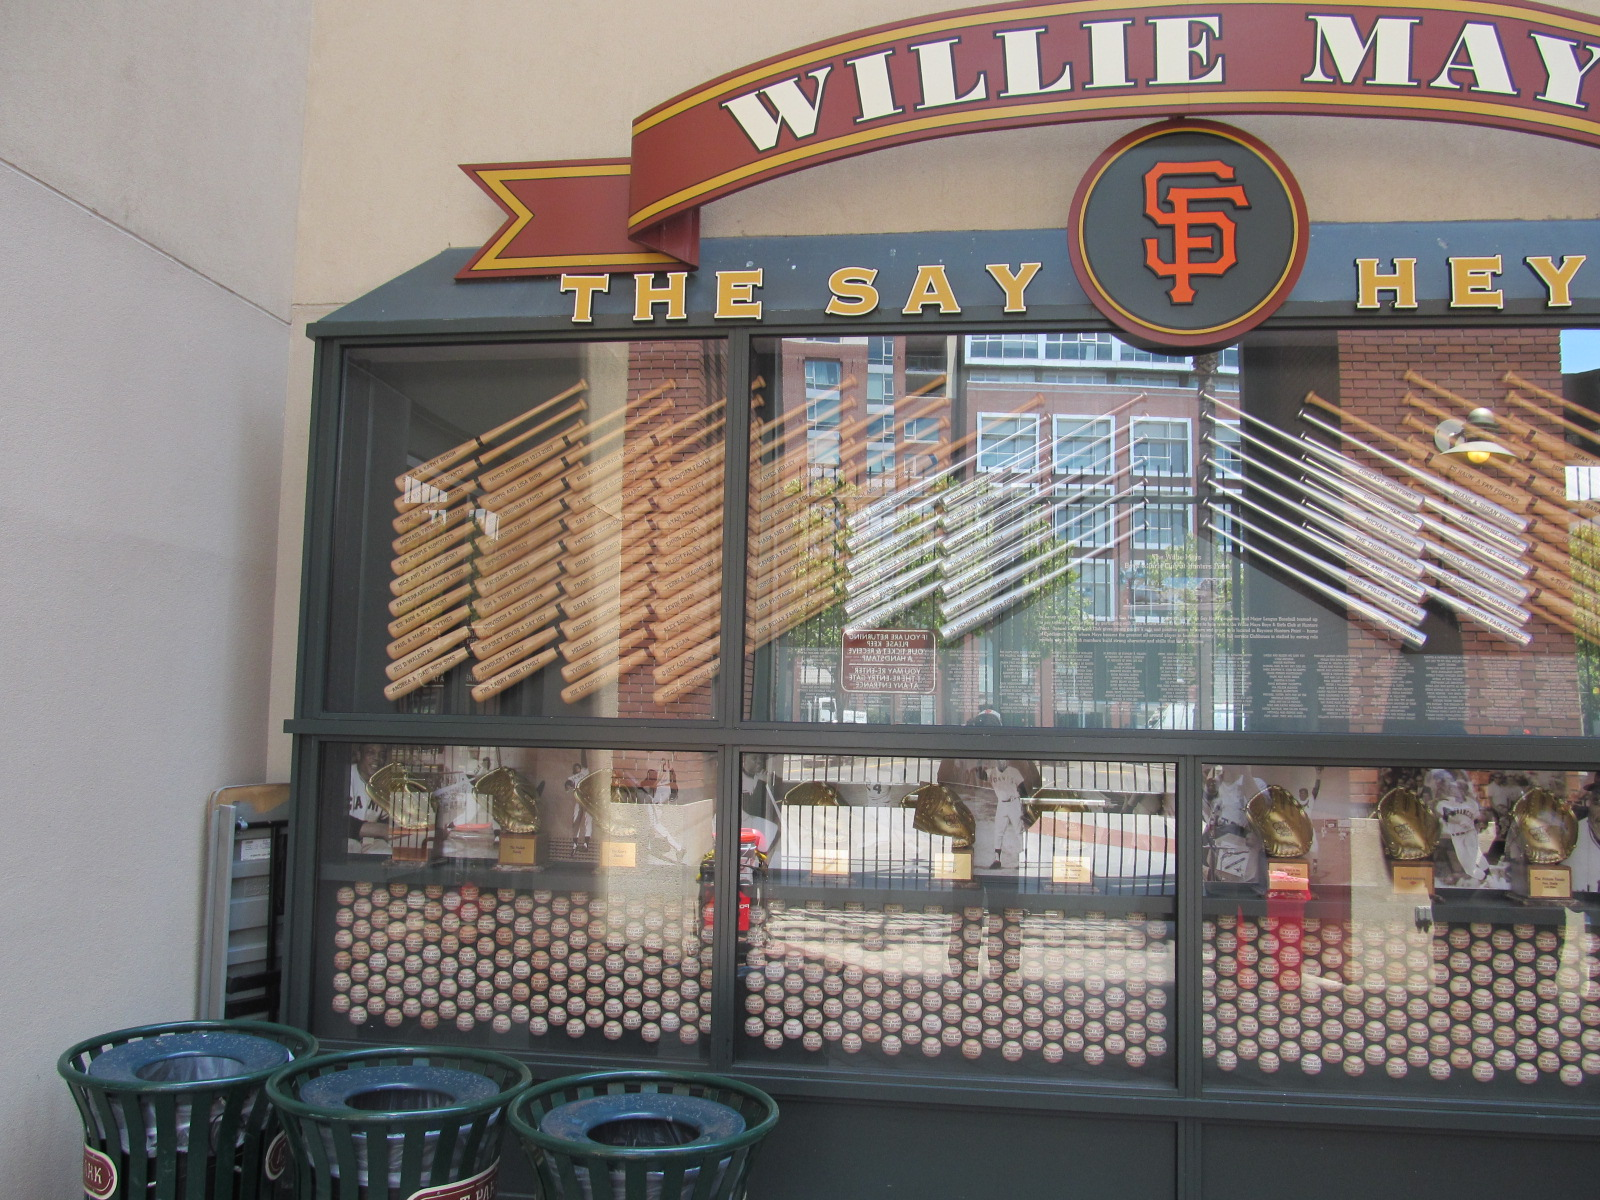 Willie Mays display featuring all of his Gold Gloves and Silver Sluggers